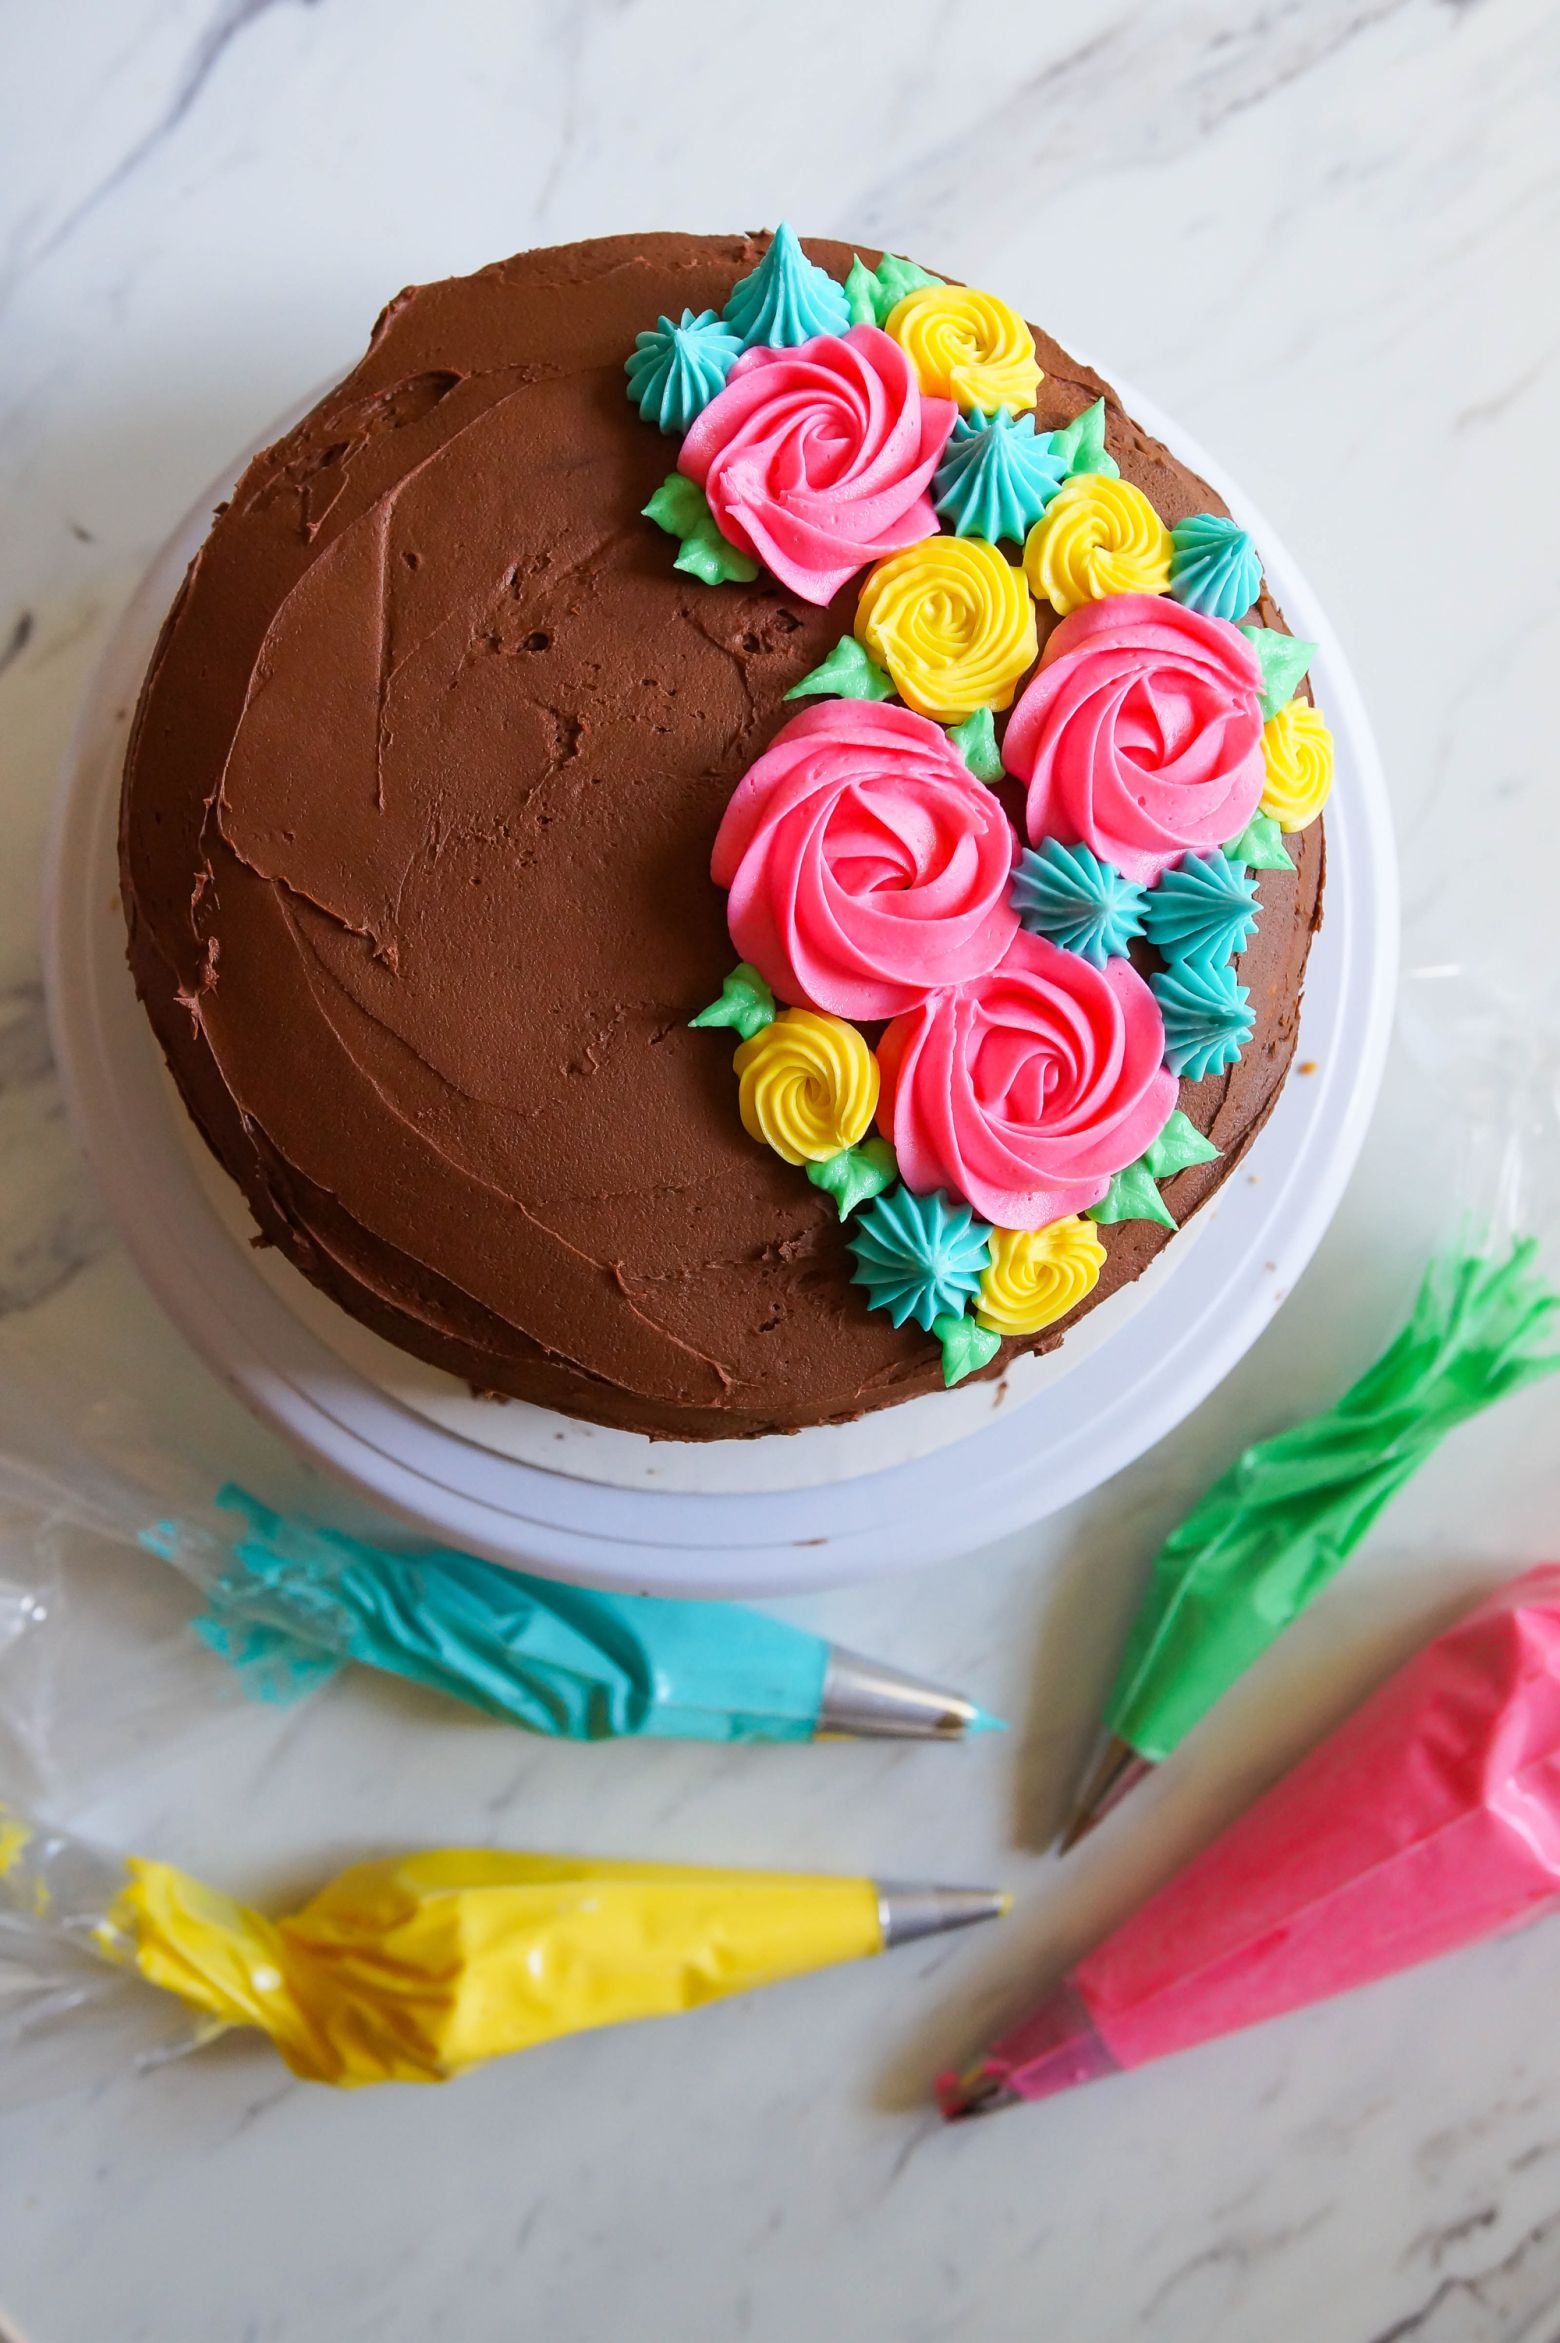 Tips for Frosting Cakes—and 4 Easy Ideas! Easy cake